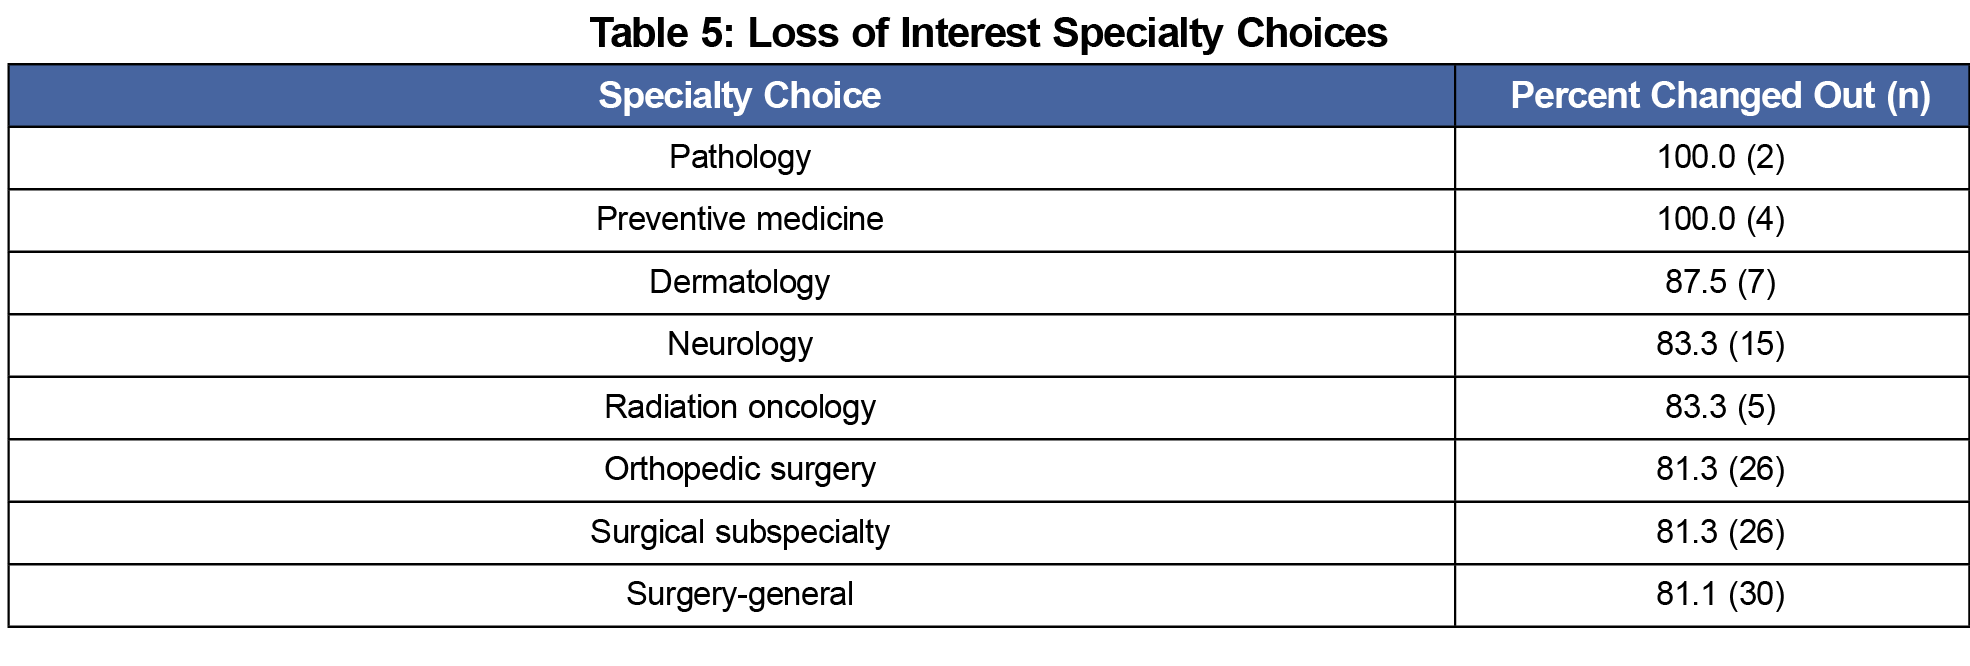 Specialty Choice Stability: Are There Implications for Early